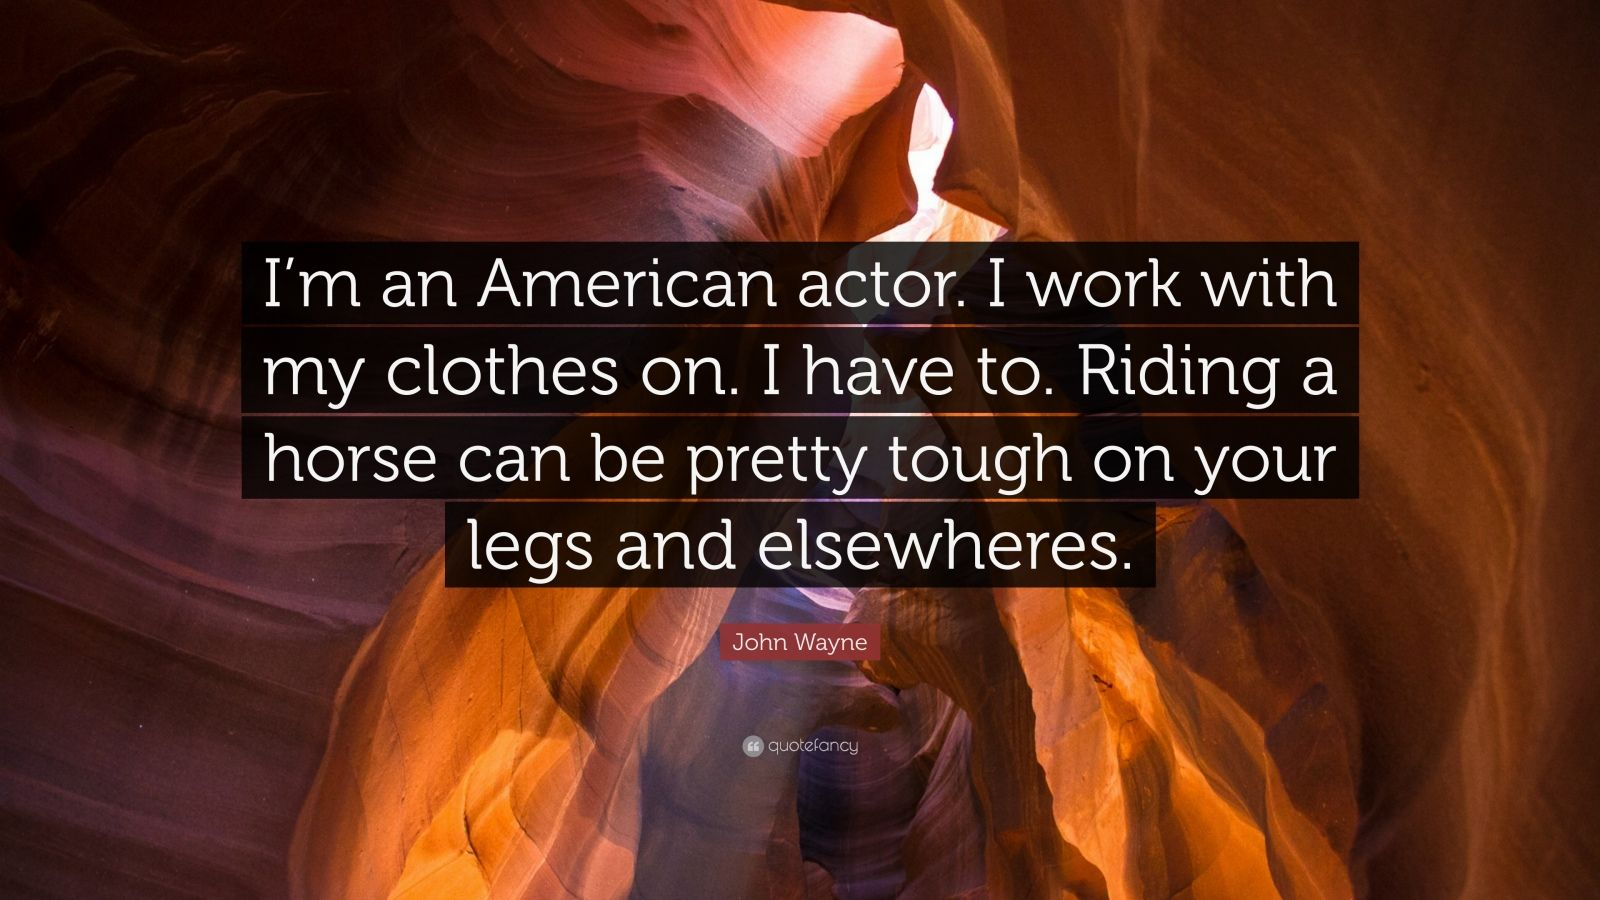 """John Wayne Quote: """"I'm an American actor. I work with my clothes on. I have to. Riding a horse can be pretty tough on your legs and elsewheres."""""""